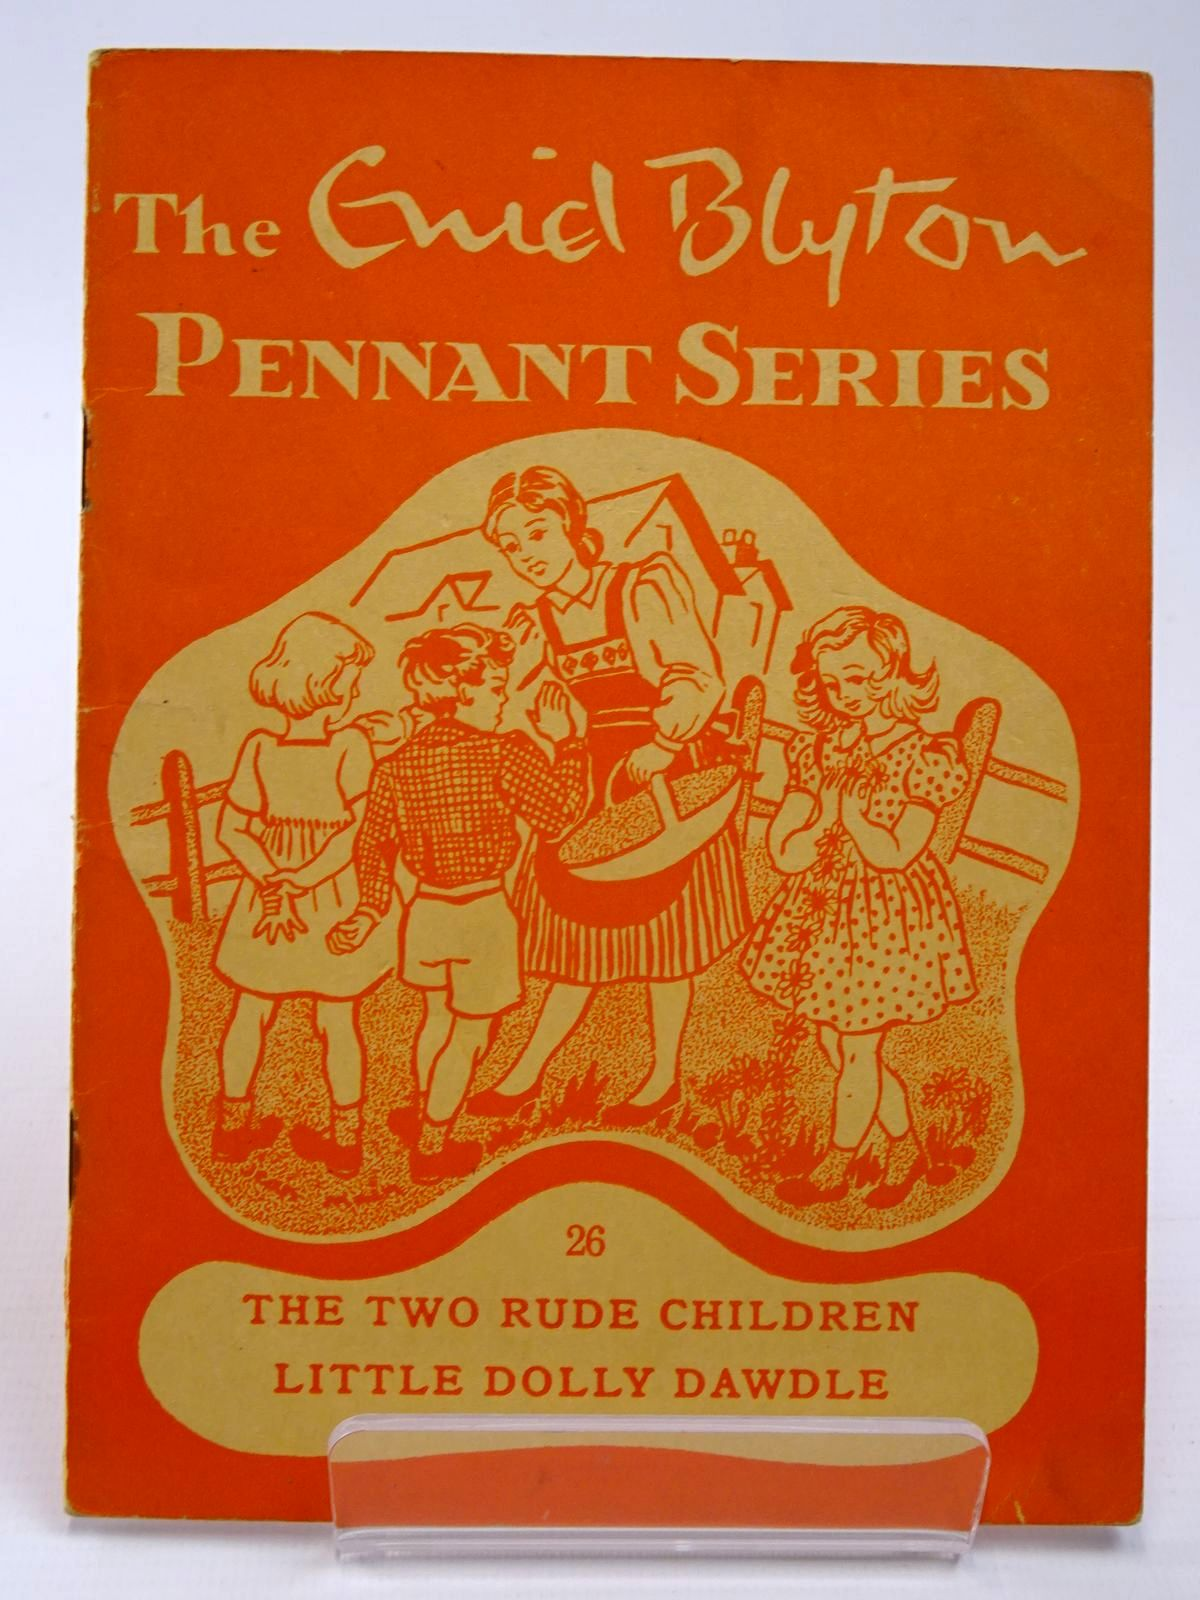 Photo of THE ENID BLYTON PENNANT SERIES No. 26 THE TWO RUDE CHILDREN / LITTLE DOLLY DAWDLE written by Blyton, Enid illustrated by Soper, Eileen Main, Jean published by Macmillan & Co. Ltd. (STOCK CODE: 2130515)  for sale by Stella & Rose's Books